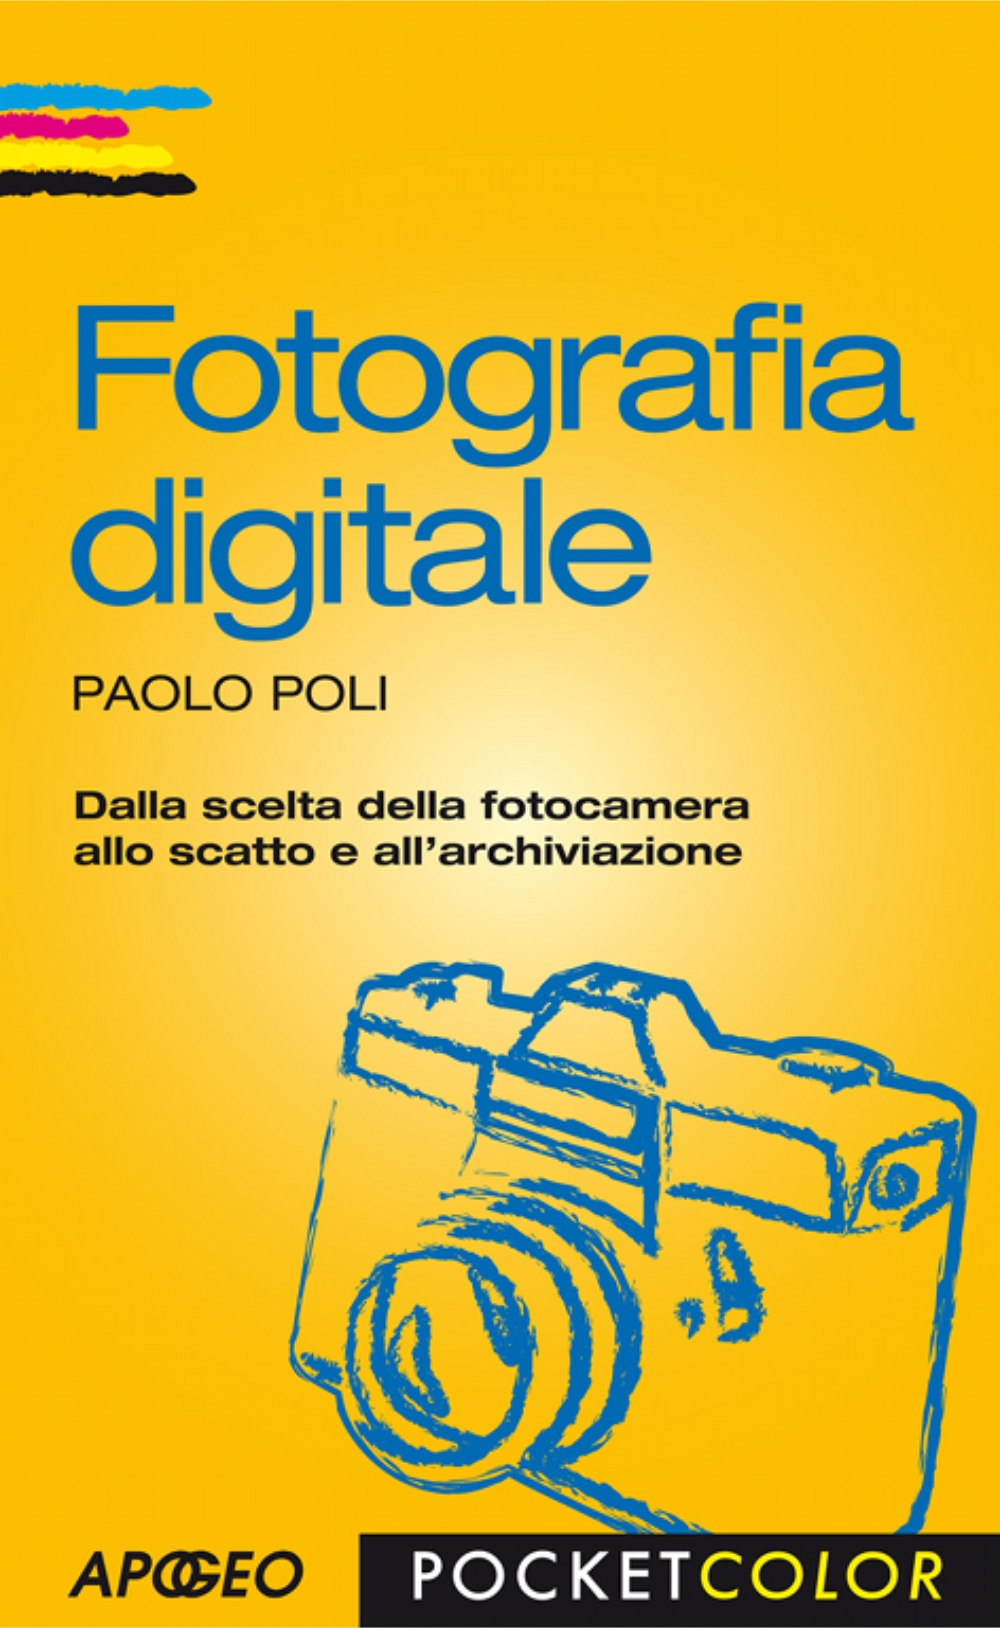 Fotografia digitale tom ang ebook 568861b8b746